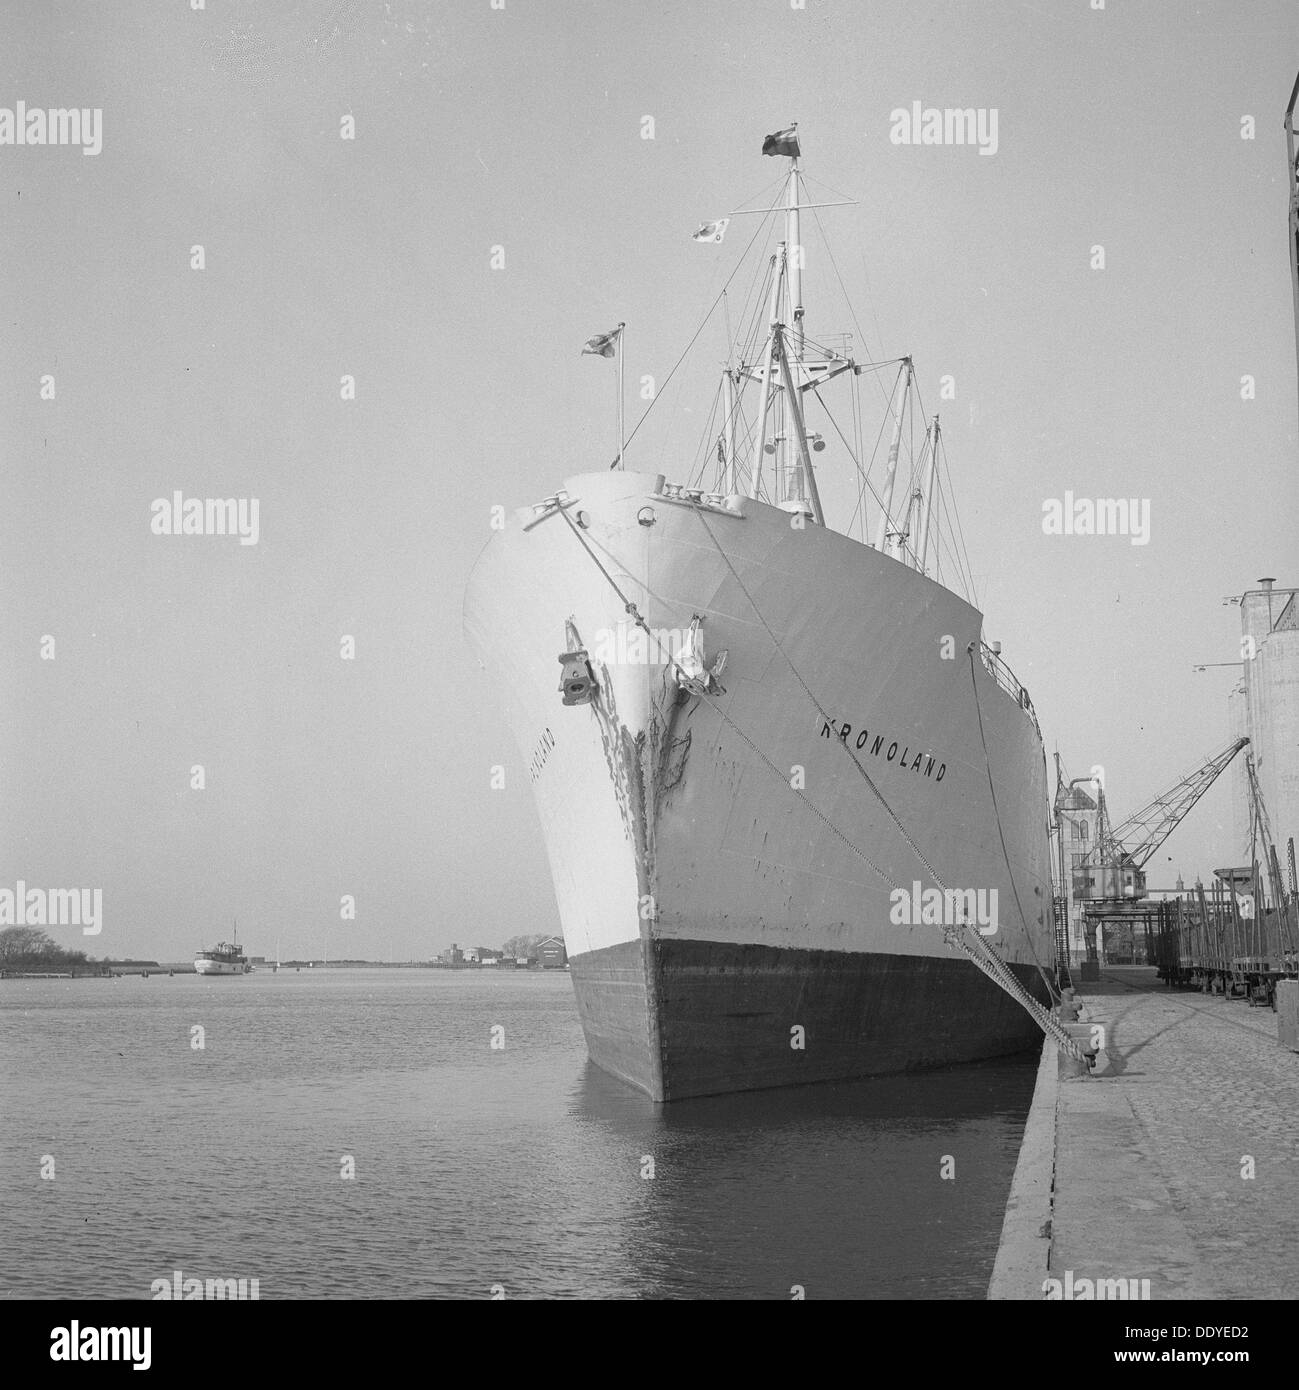 The M/S 'Kronoland' moored at the quayside, Landskrona harbour, Sweden 1953. From the Landskrona Museum Collection. - Stock Image